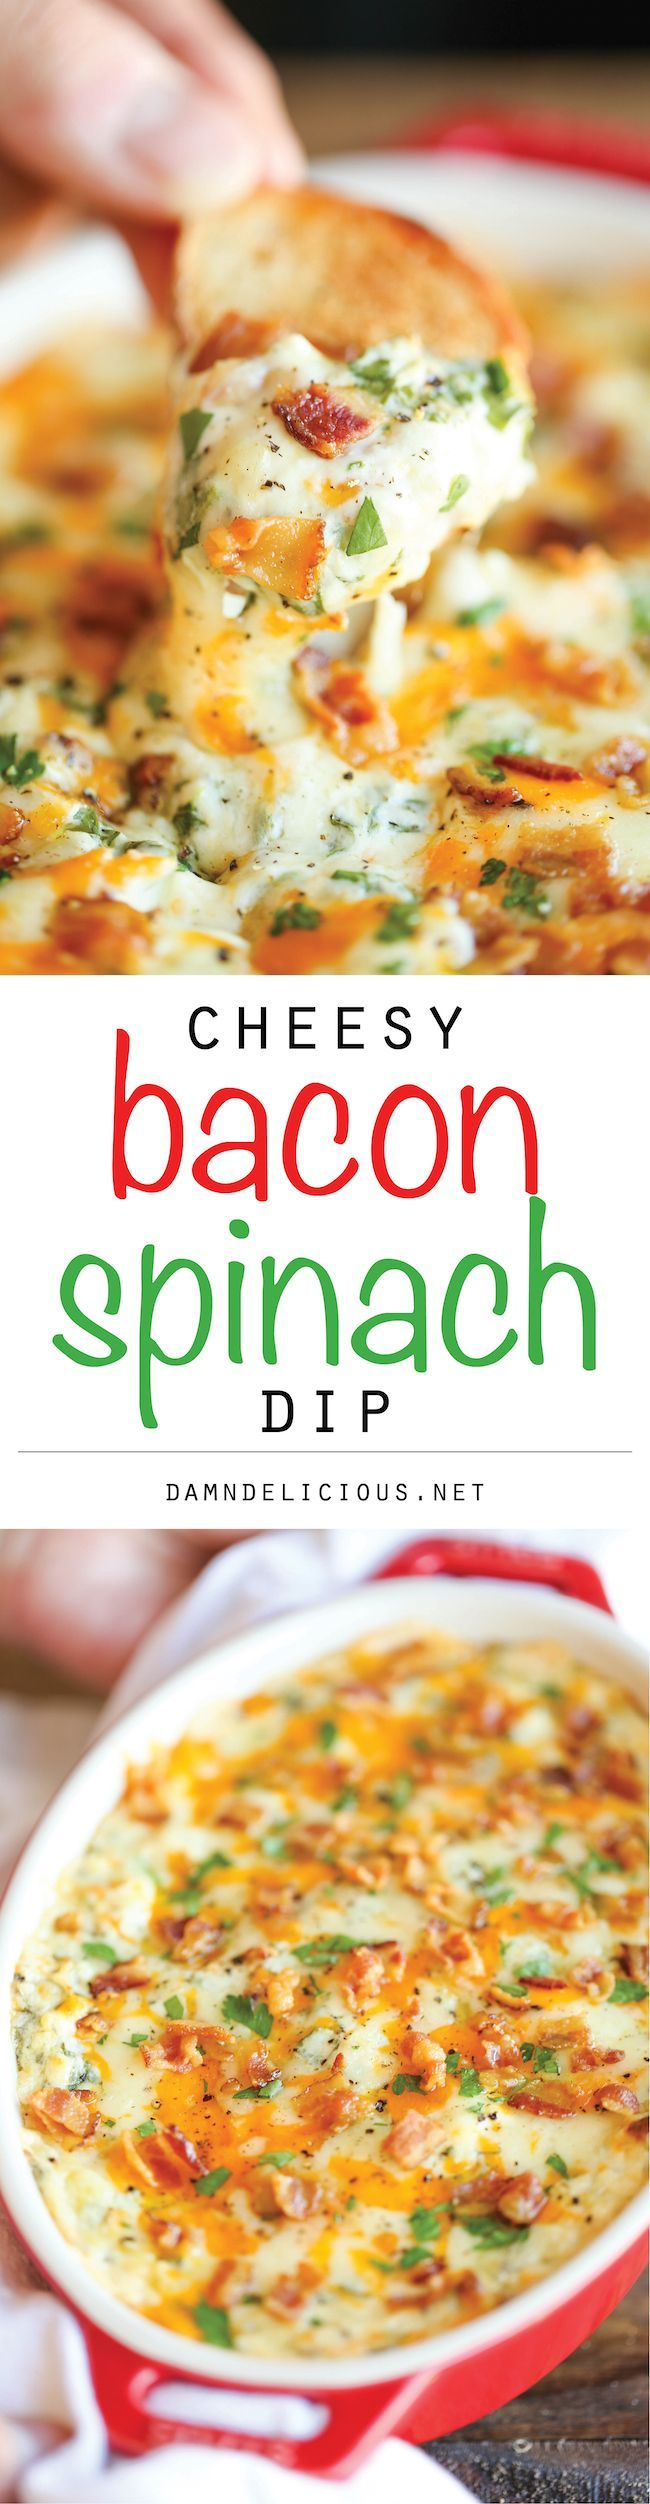 Cheesy Bacon Spinach Dip - The best and cheesiest, creamiest dip you will ever have - after all, you just can't go wrong with bacon!  party dip recipe